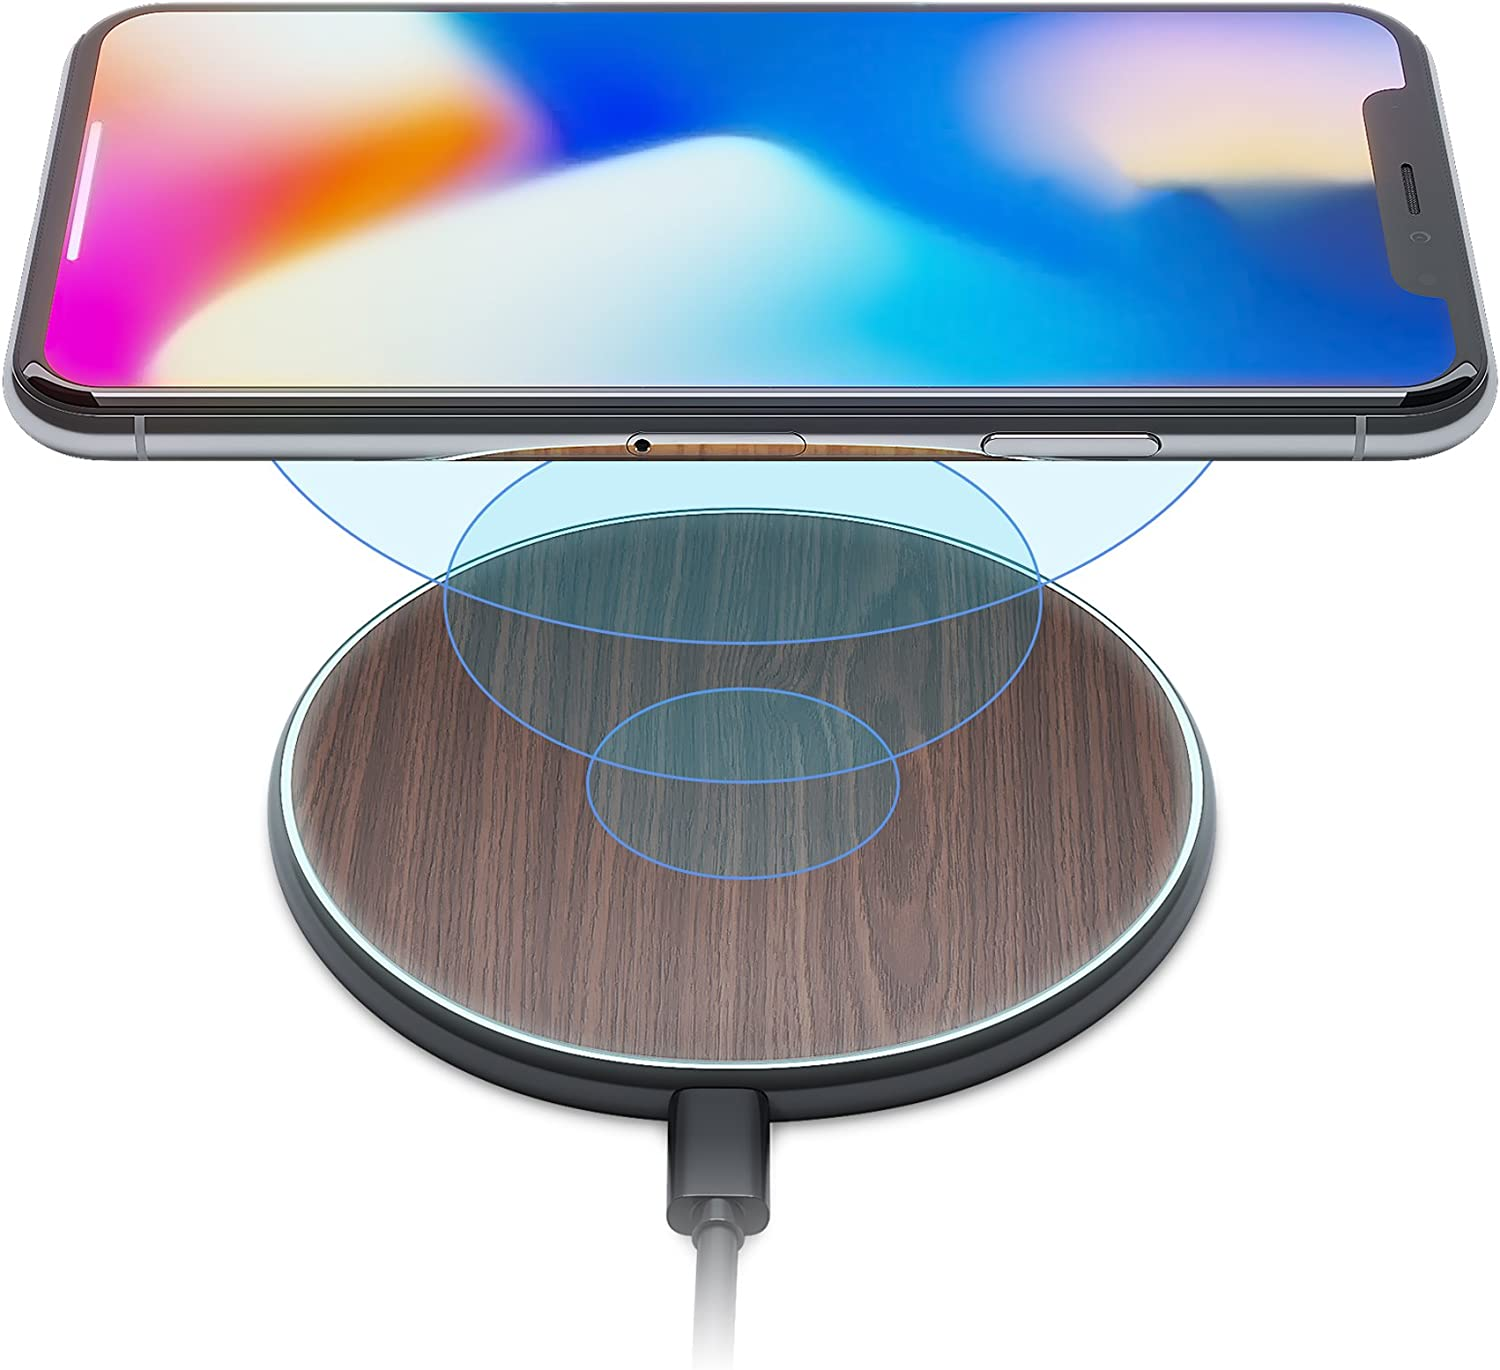 iPhone X 8 Qi Best Wireless Charger Pad Kit by Wuteku New 2019 Upgraded Stylish Natural Bamboo Wood Look Thin Slim Design Compatible Samsung and